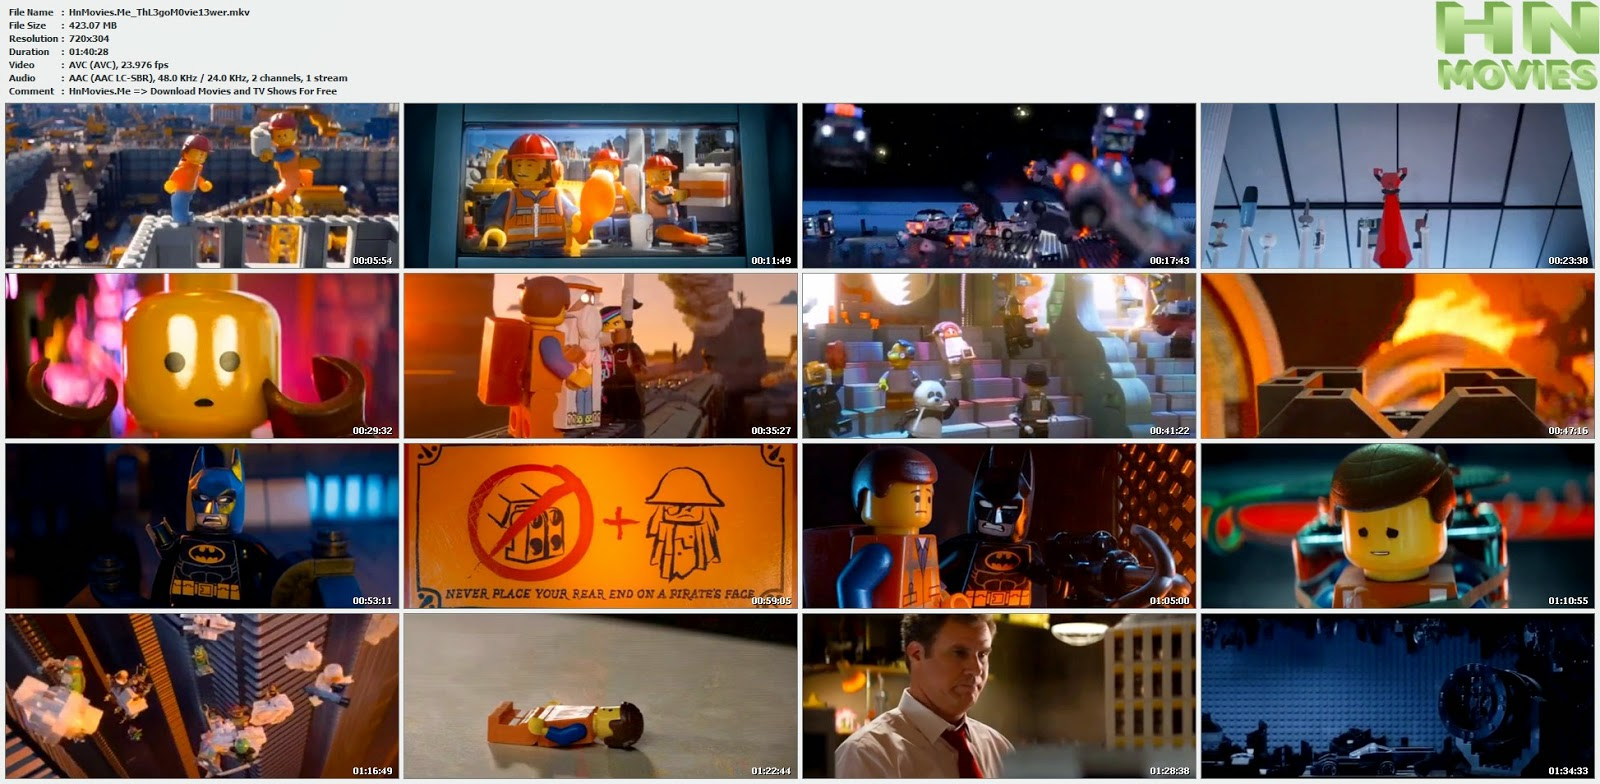 movie screenshot of The Lego Movie fdmovie.com